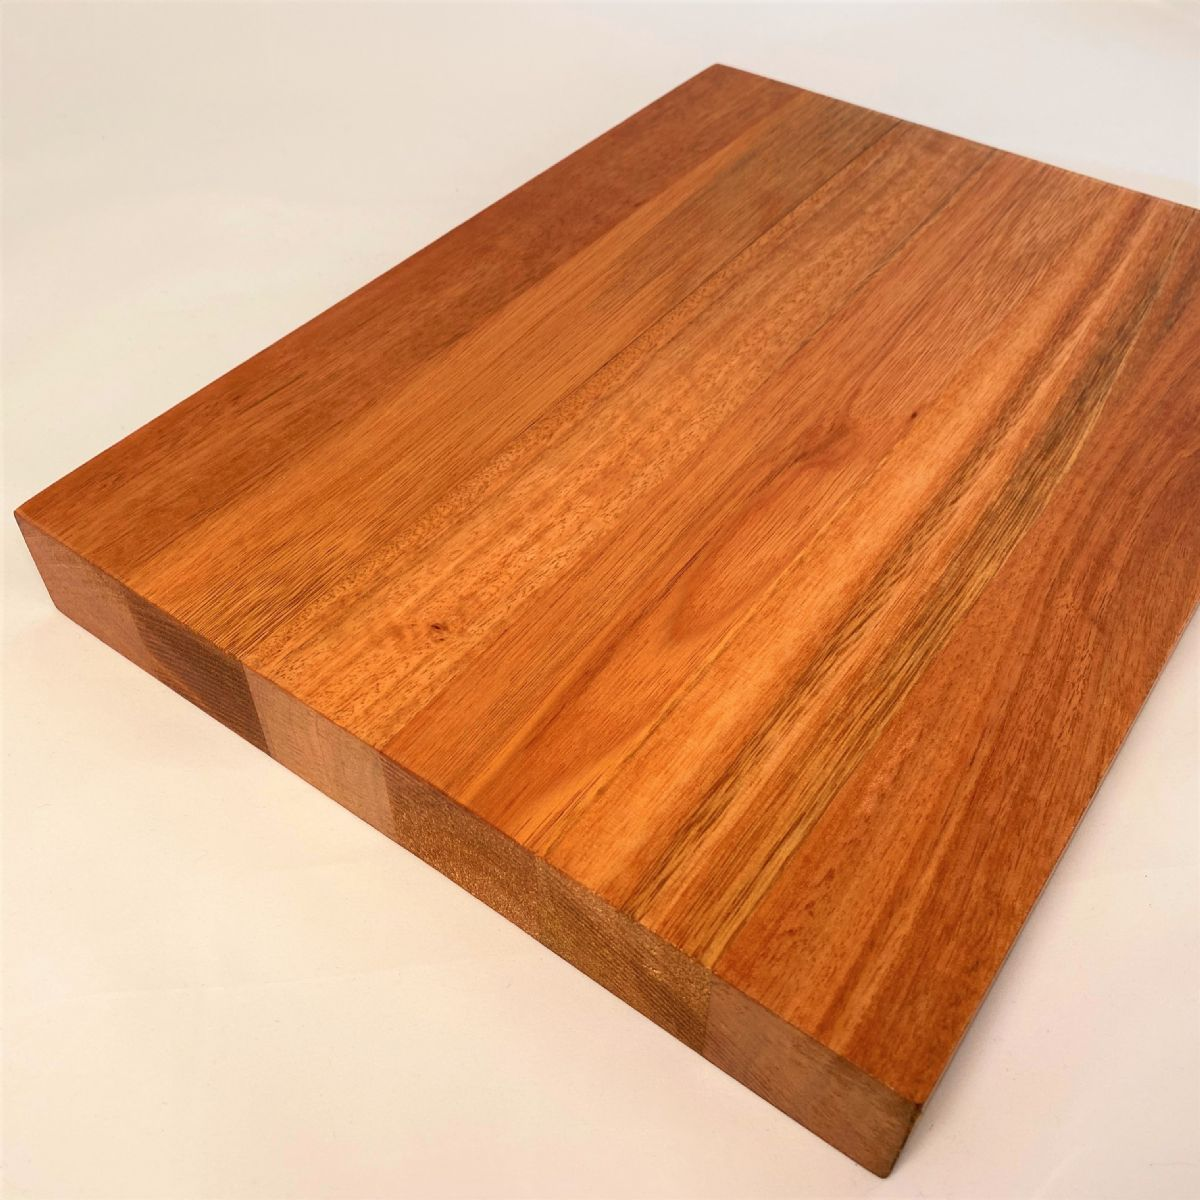 EUCALYPTUS SALIGNA CHOPPING BOARD: Wide